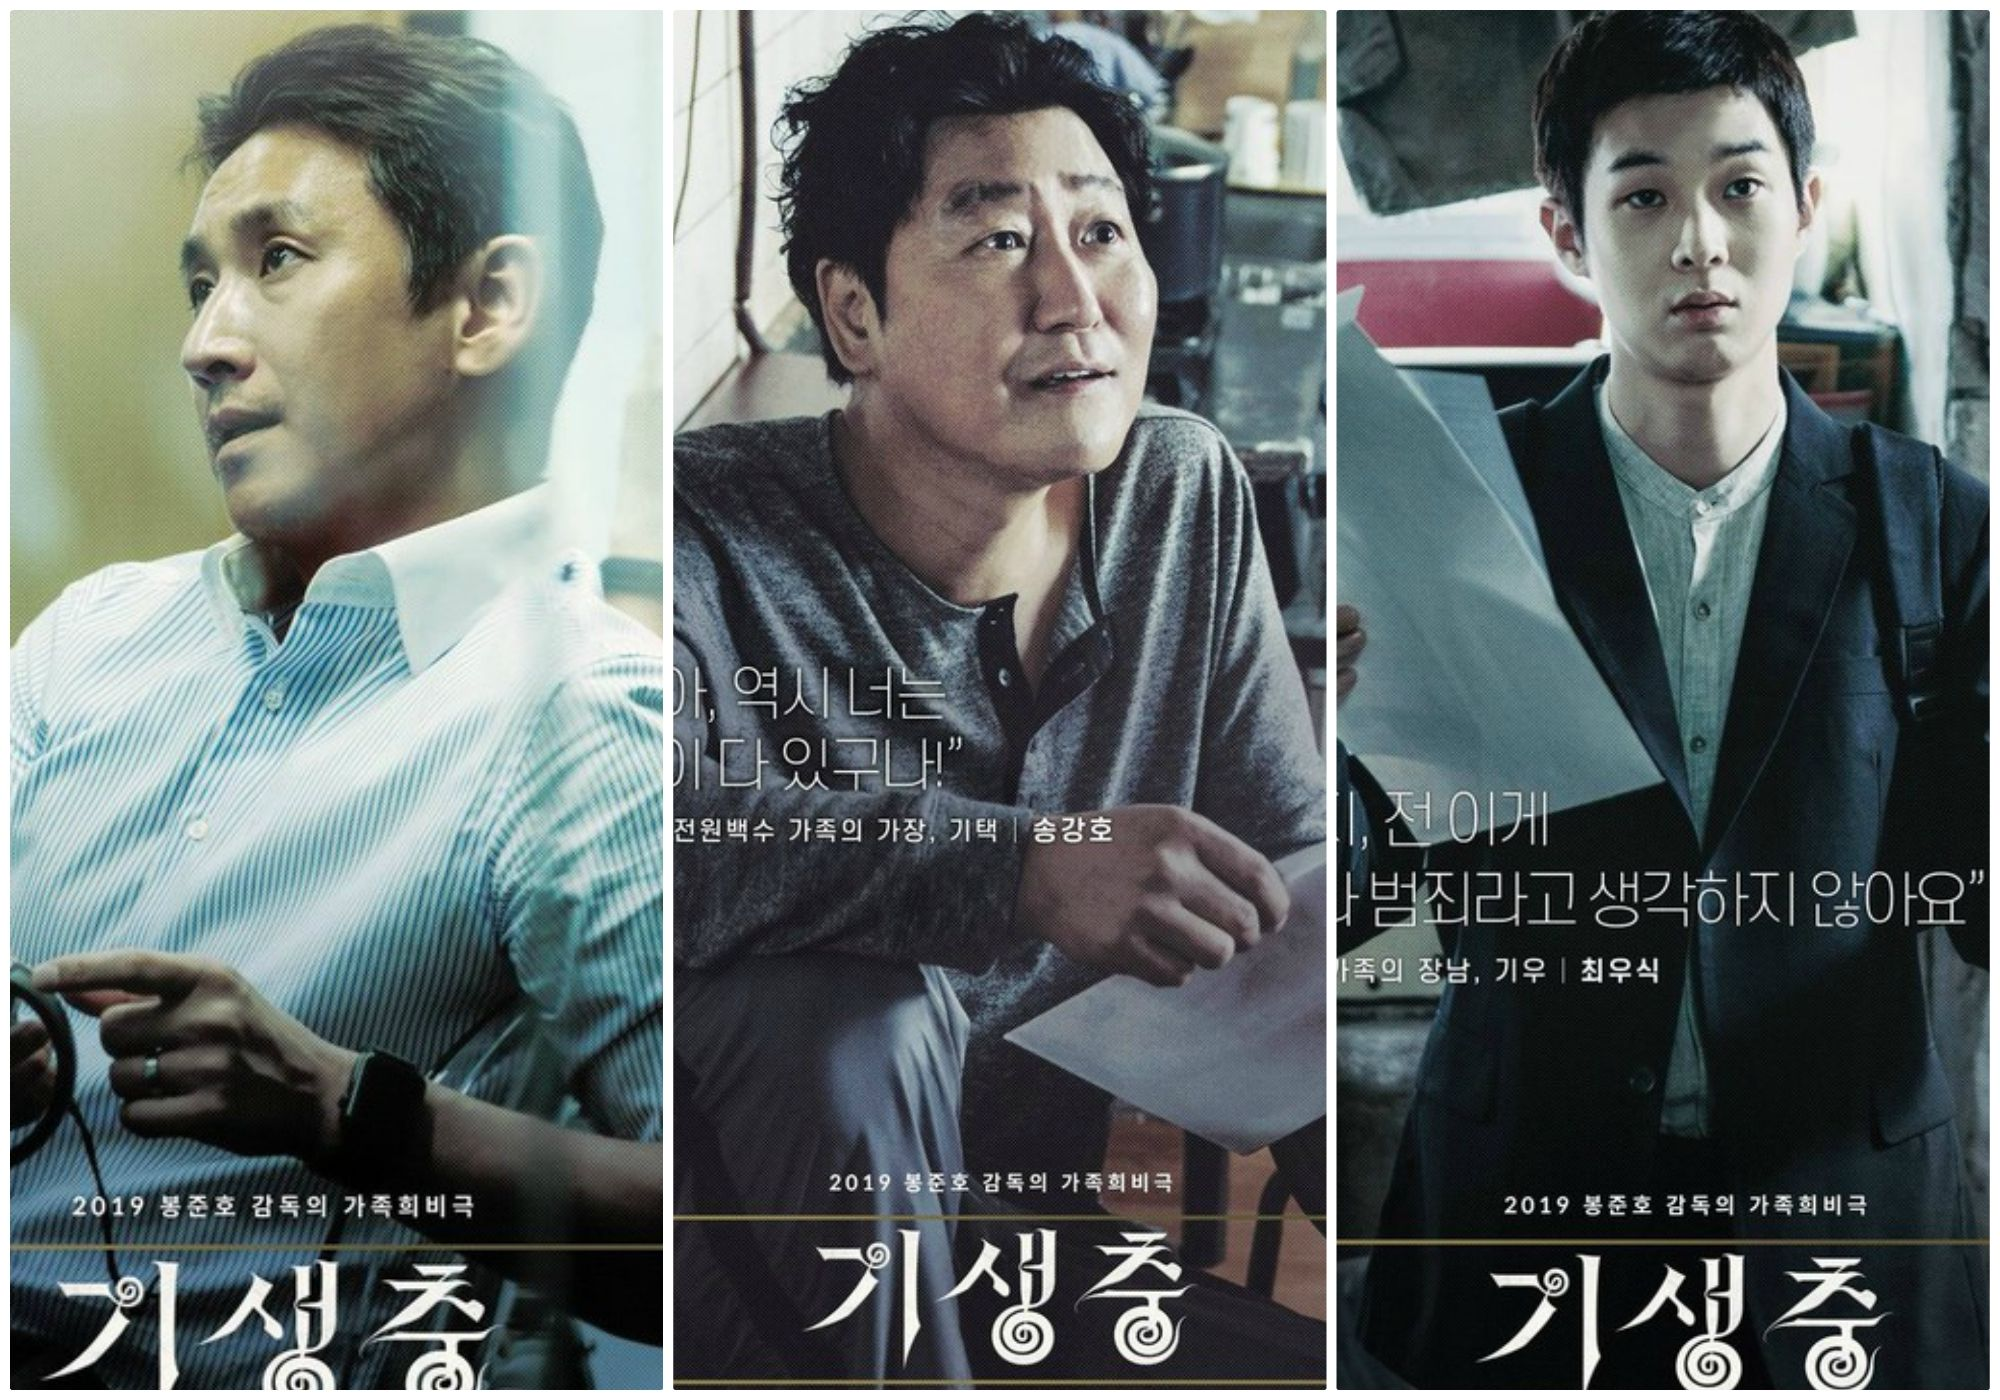 """Movie """"Parasite"""" Bong Joon Ho - Song Kang Ho released an impressive series of posters before his debut at Cannes Film Festival"""